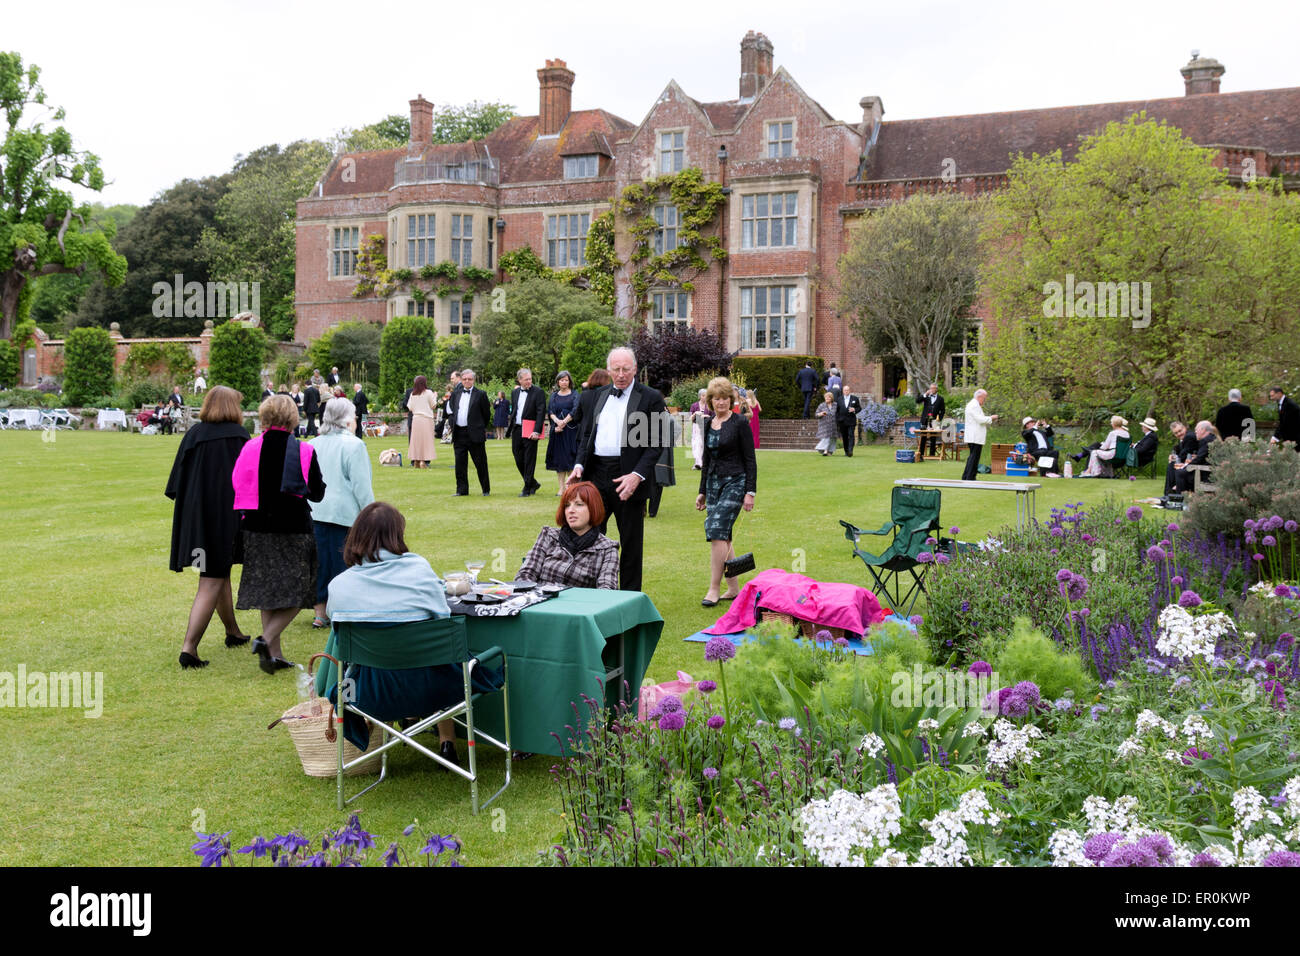 Opera UK: People having a picnic at the Glyndebourne Opera festival with the house in the background, Glyndebourne, Stock Photo